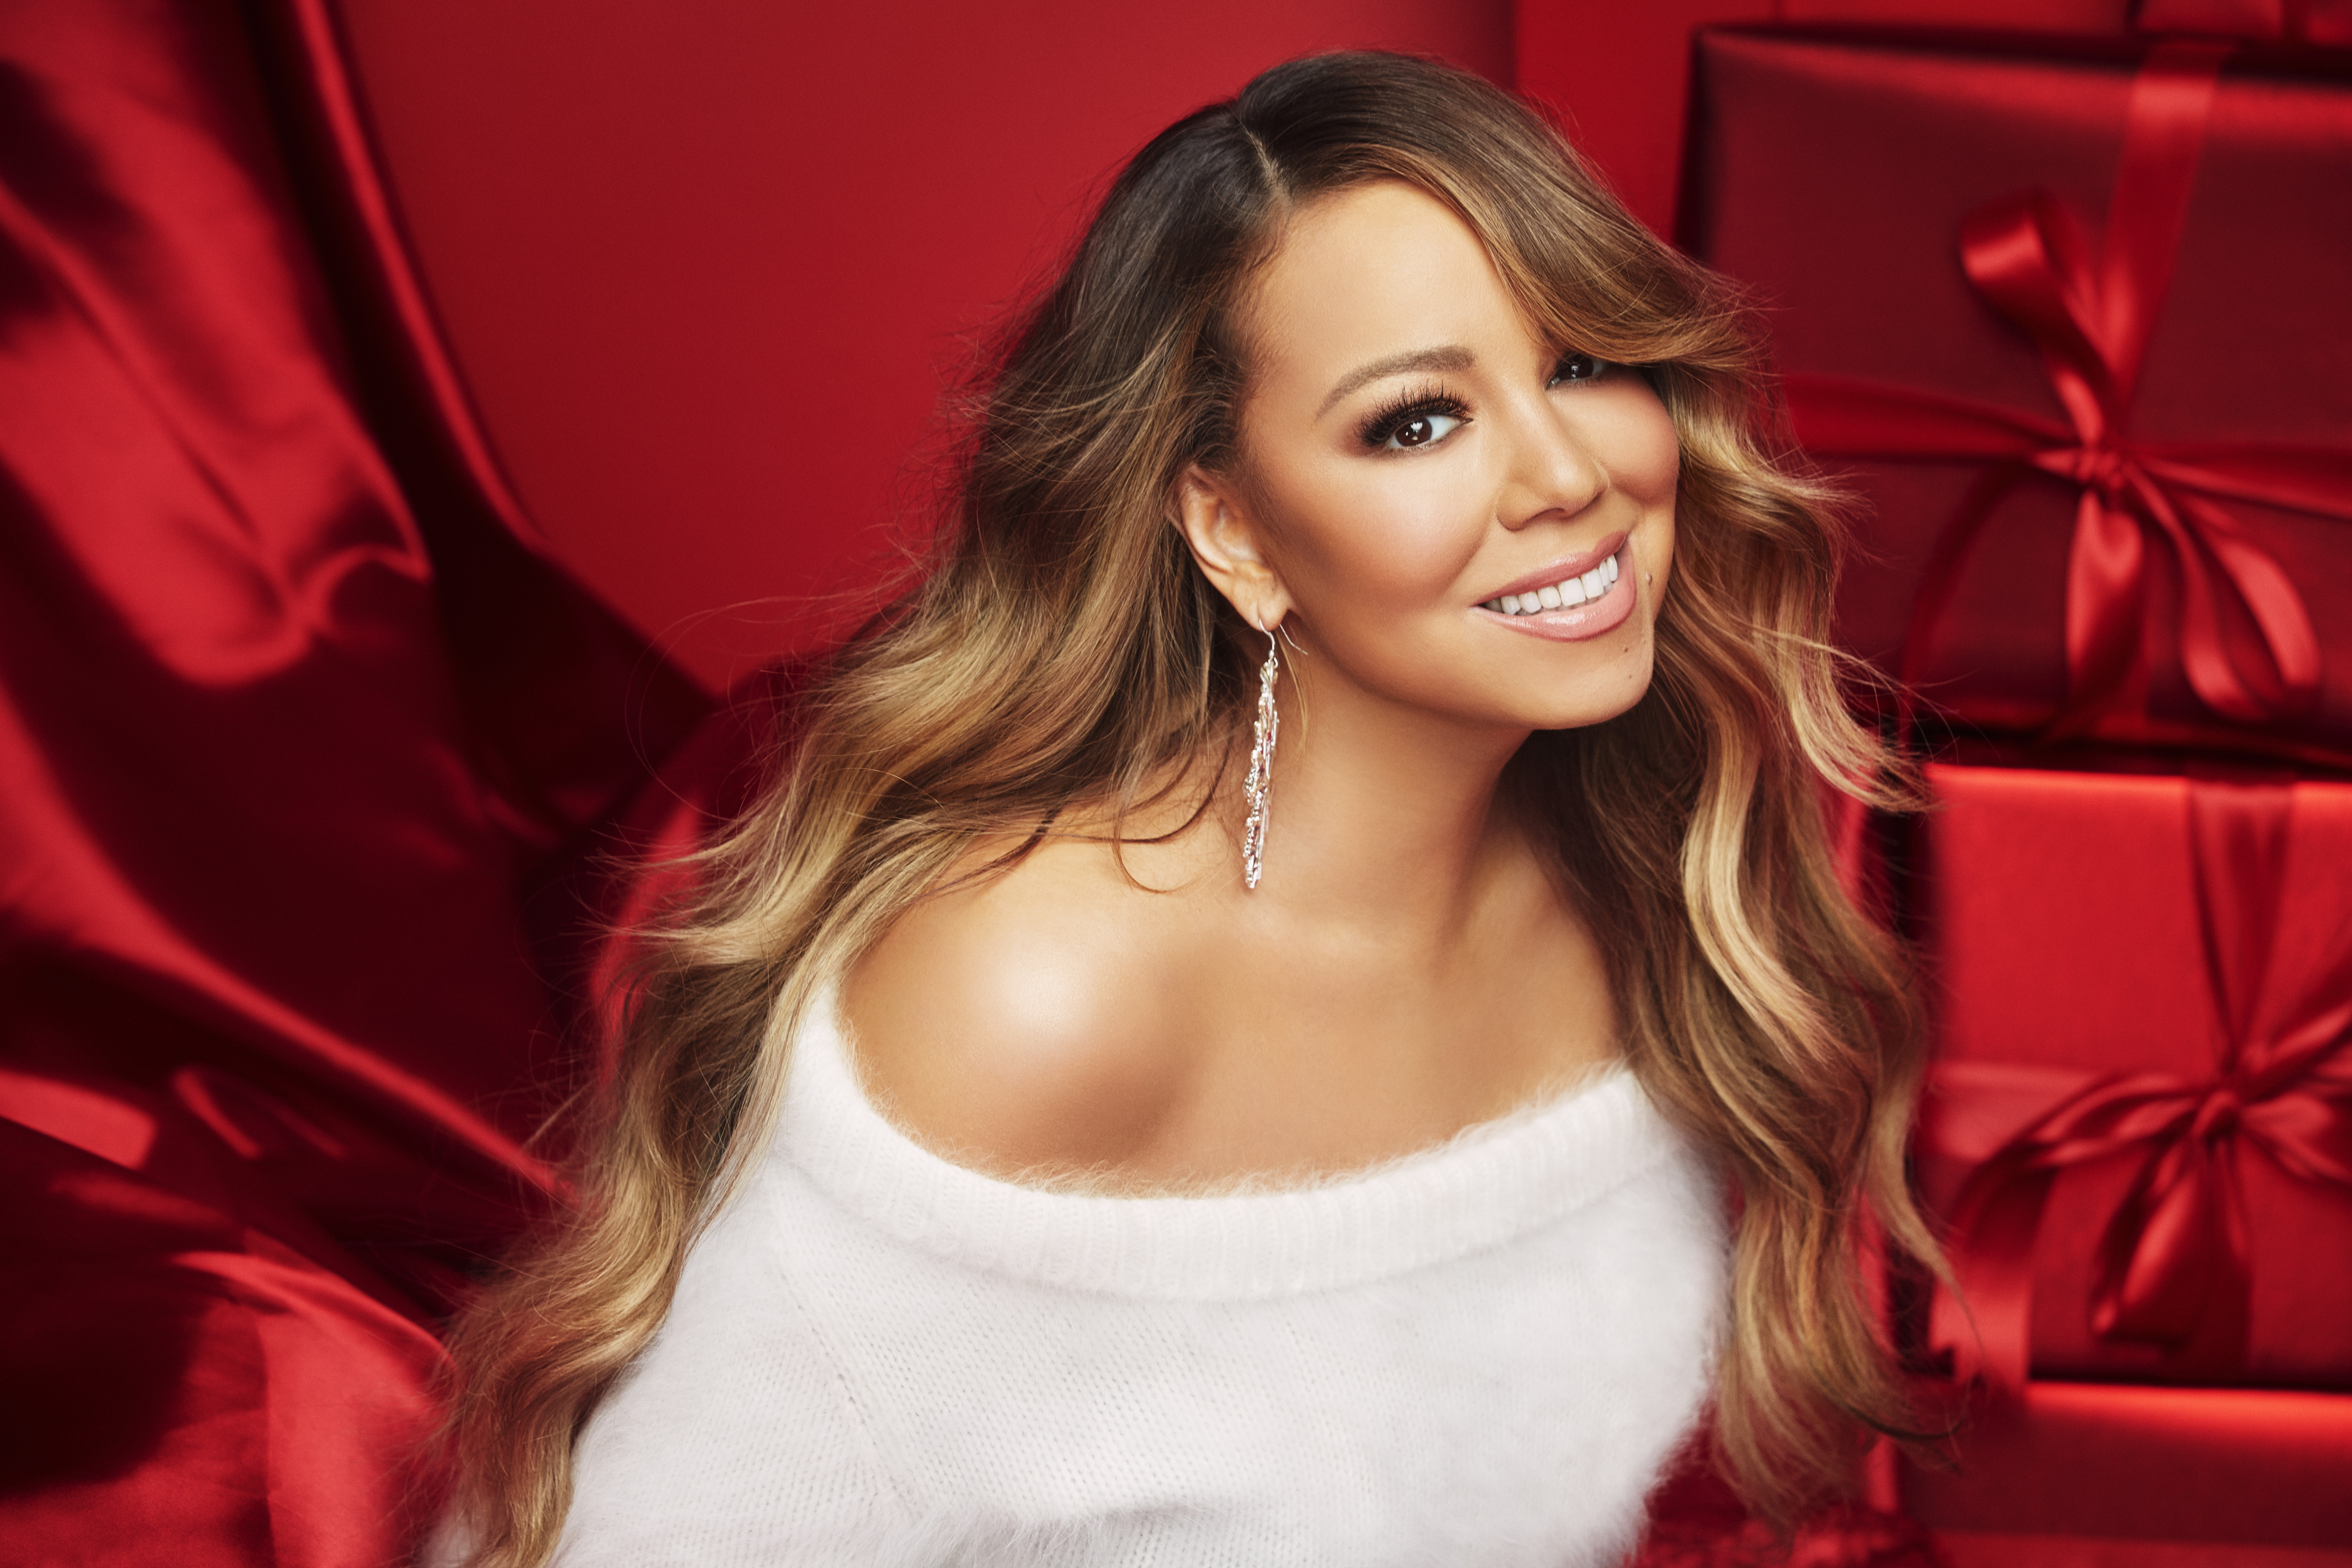 Mariah Carey Christmas Album 2021 Mariah Carey S Magical Christmas Special Tops Apple Tv Charts In 100 Countries The Hollywood Reporter